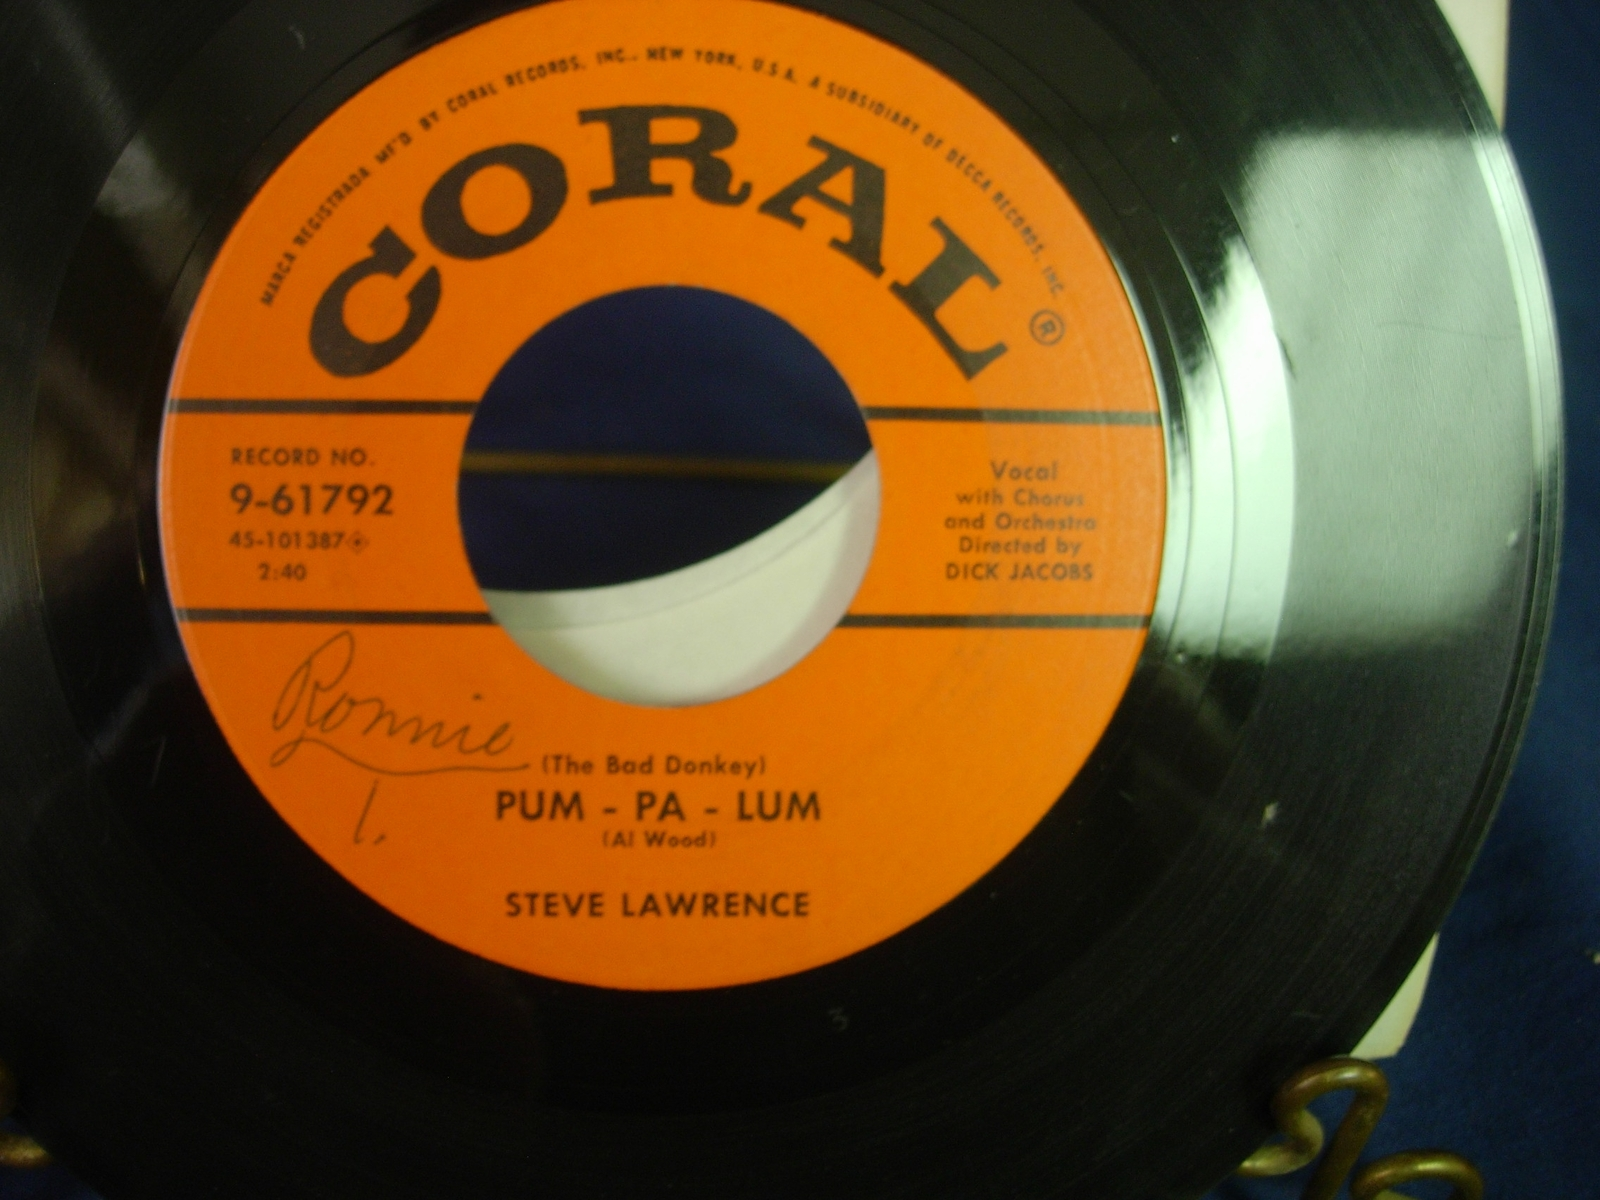 Steve Lawrence - Party Doll / Pum Pa Lum - Coral Records 9-61792